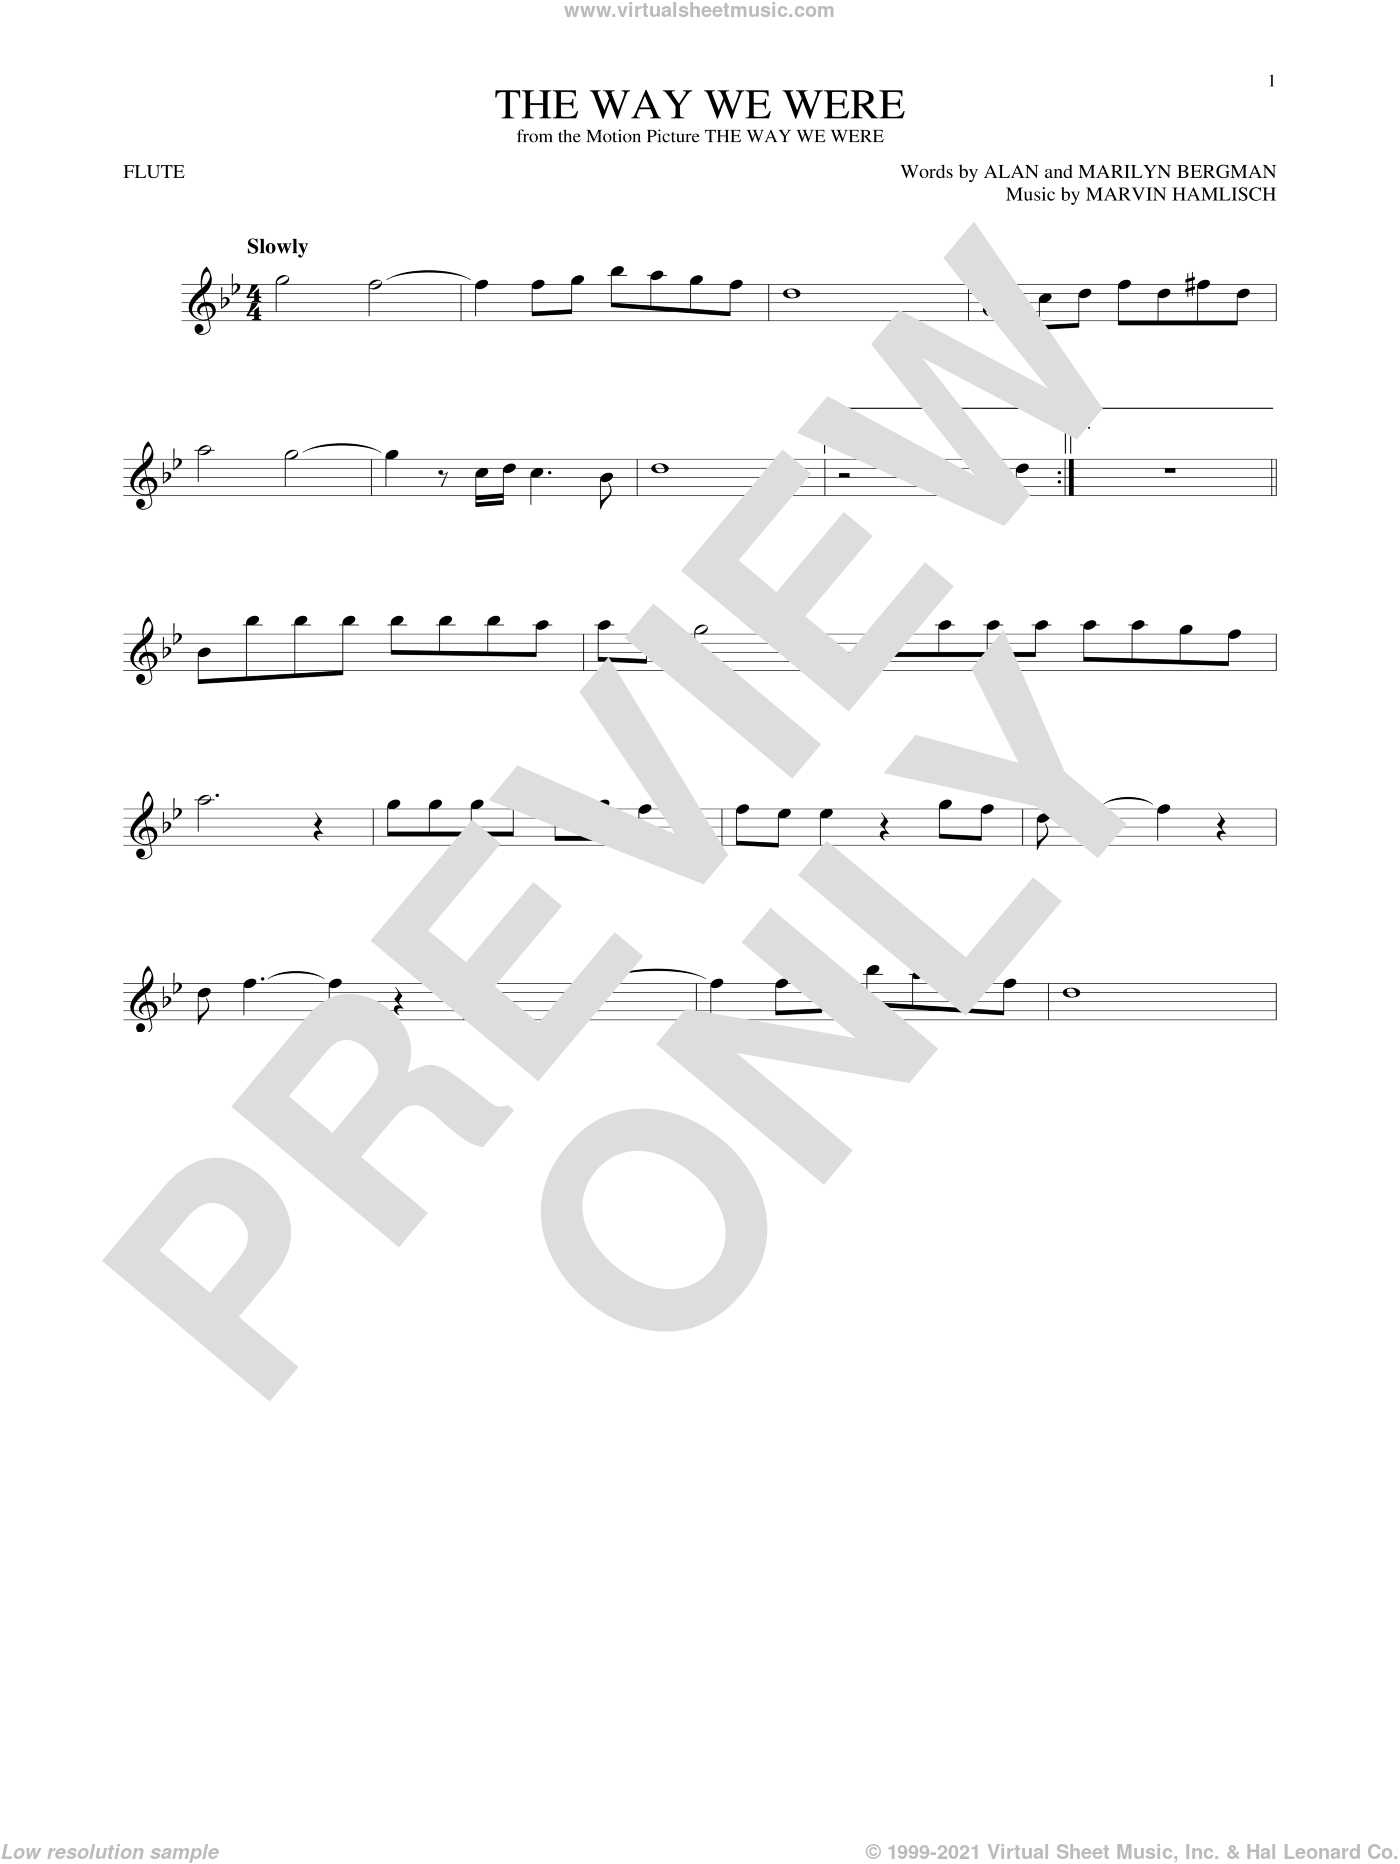 The Way We Were sheet music for flute solo by Marvin Hamlisch, Barbra Streisand, Alan Bergman and Marilyn Bergman. Score Image Preview.